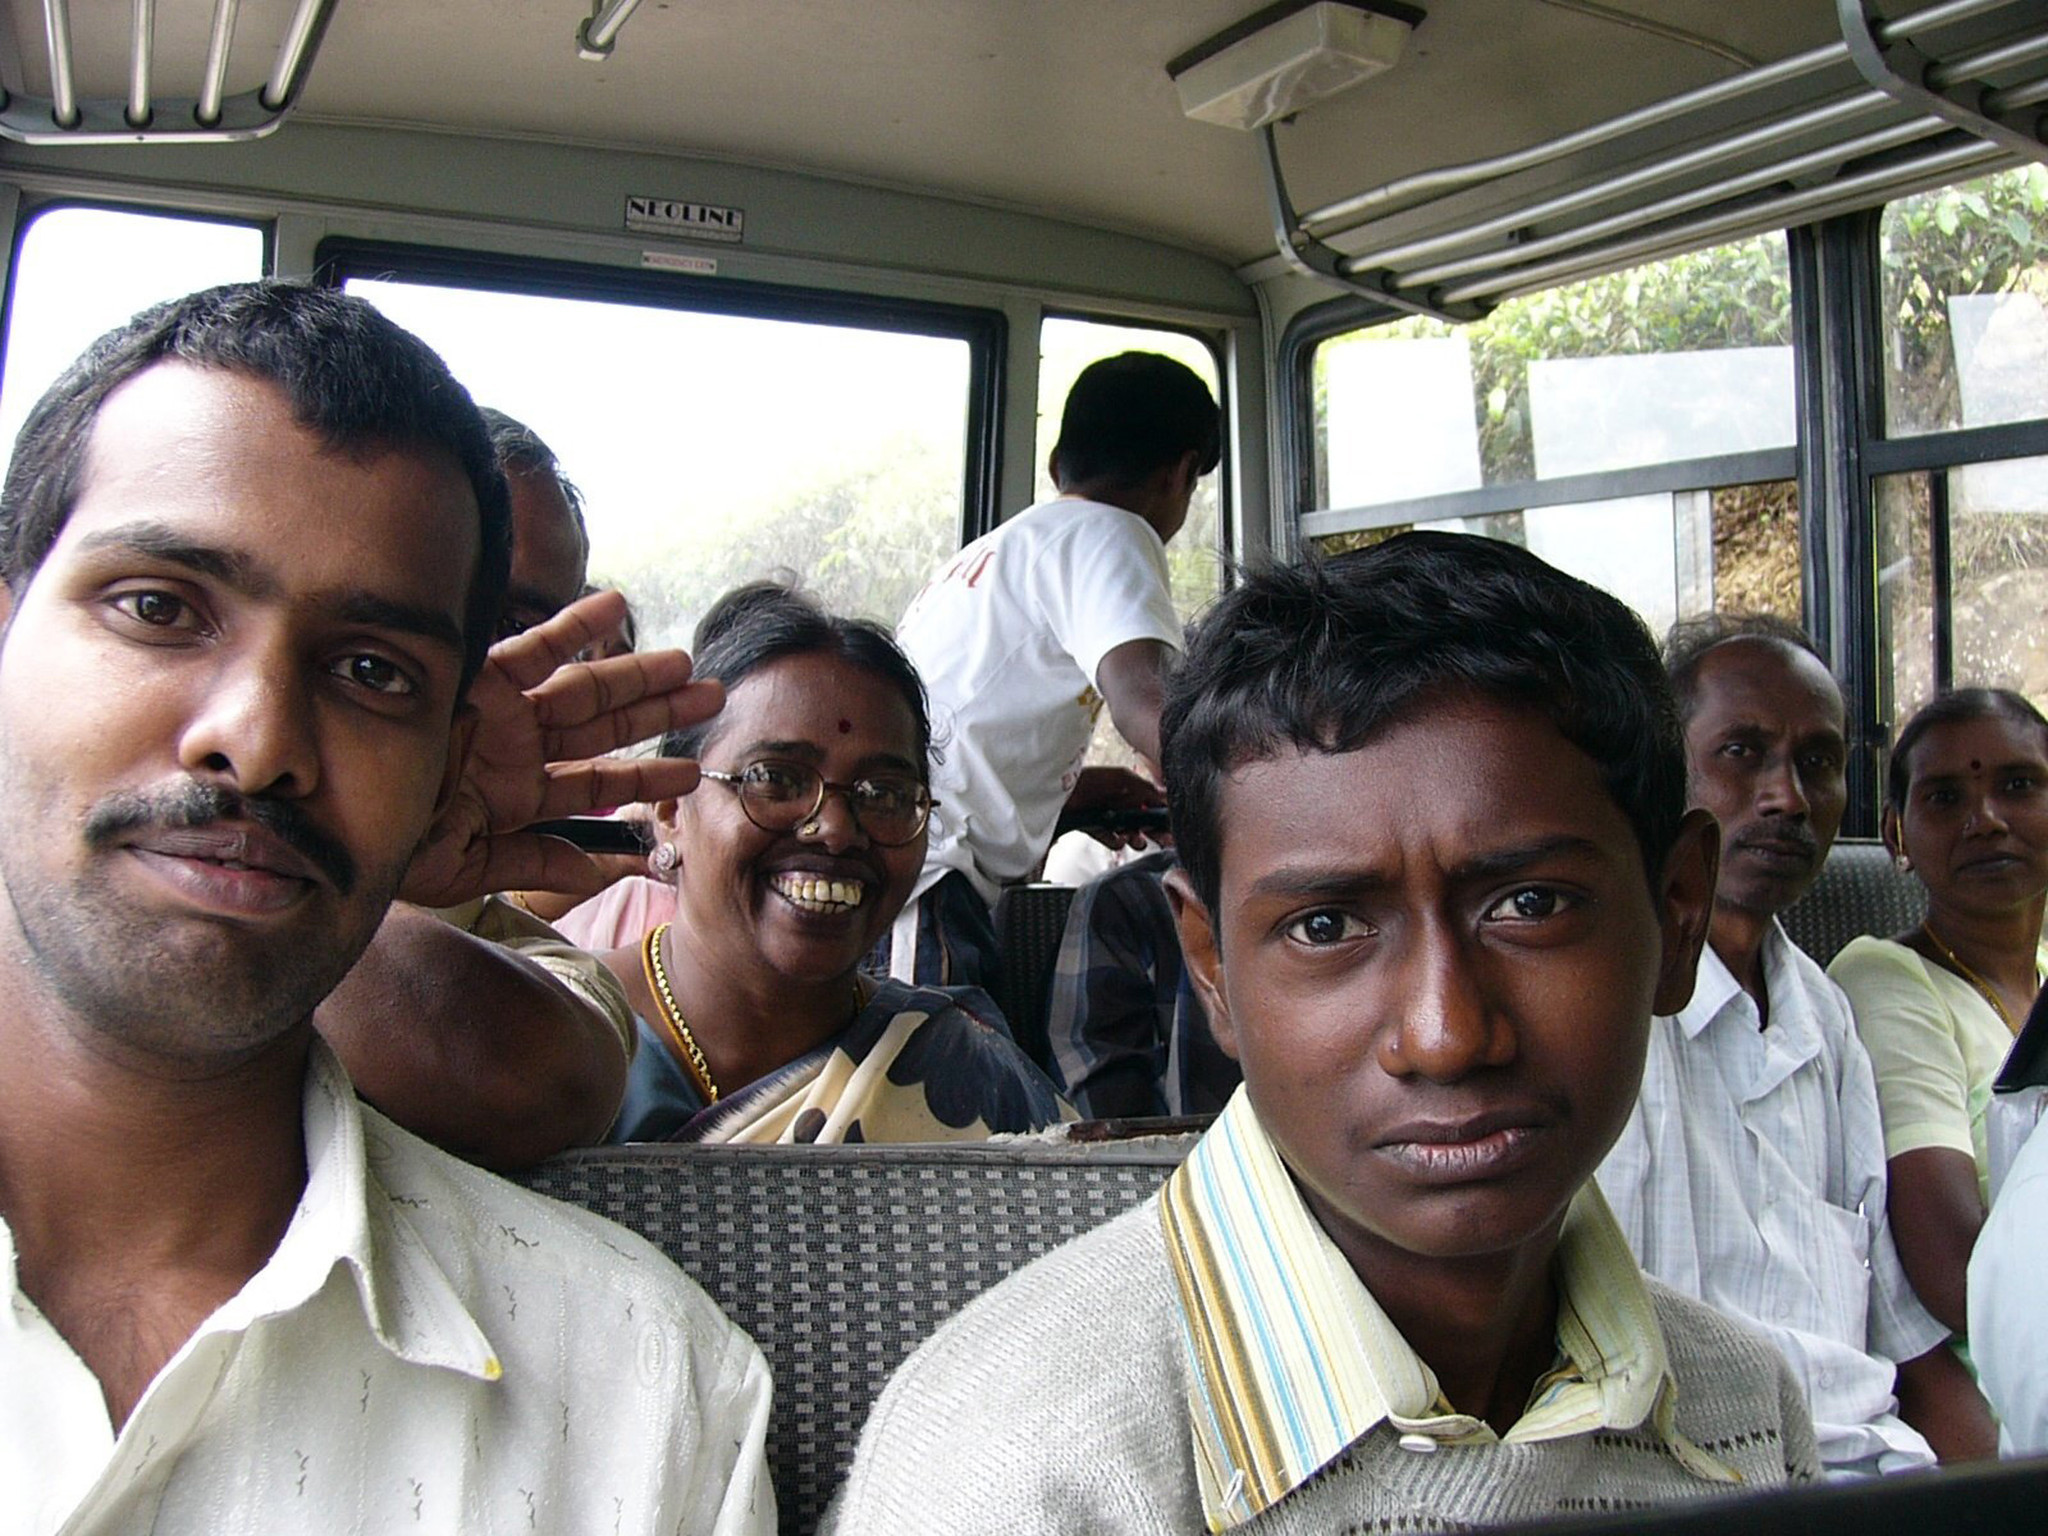 Locals in Southern India share their bus with foreign travelers. One can save money, and find adventure, by riding buses on foreign trips.